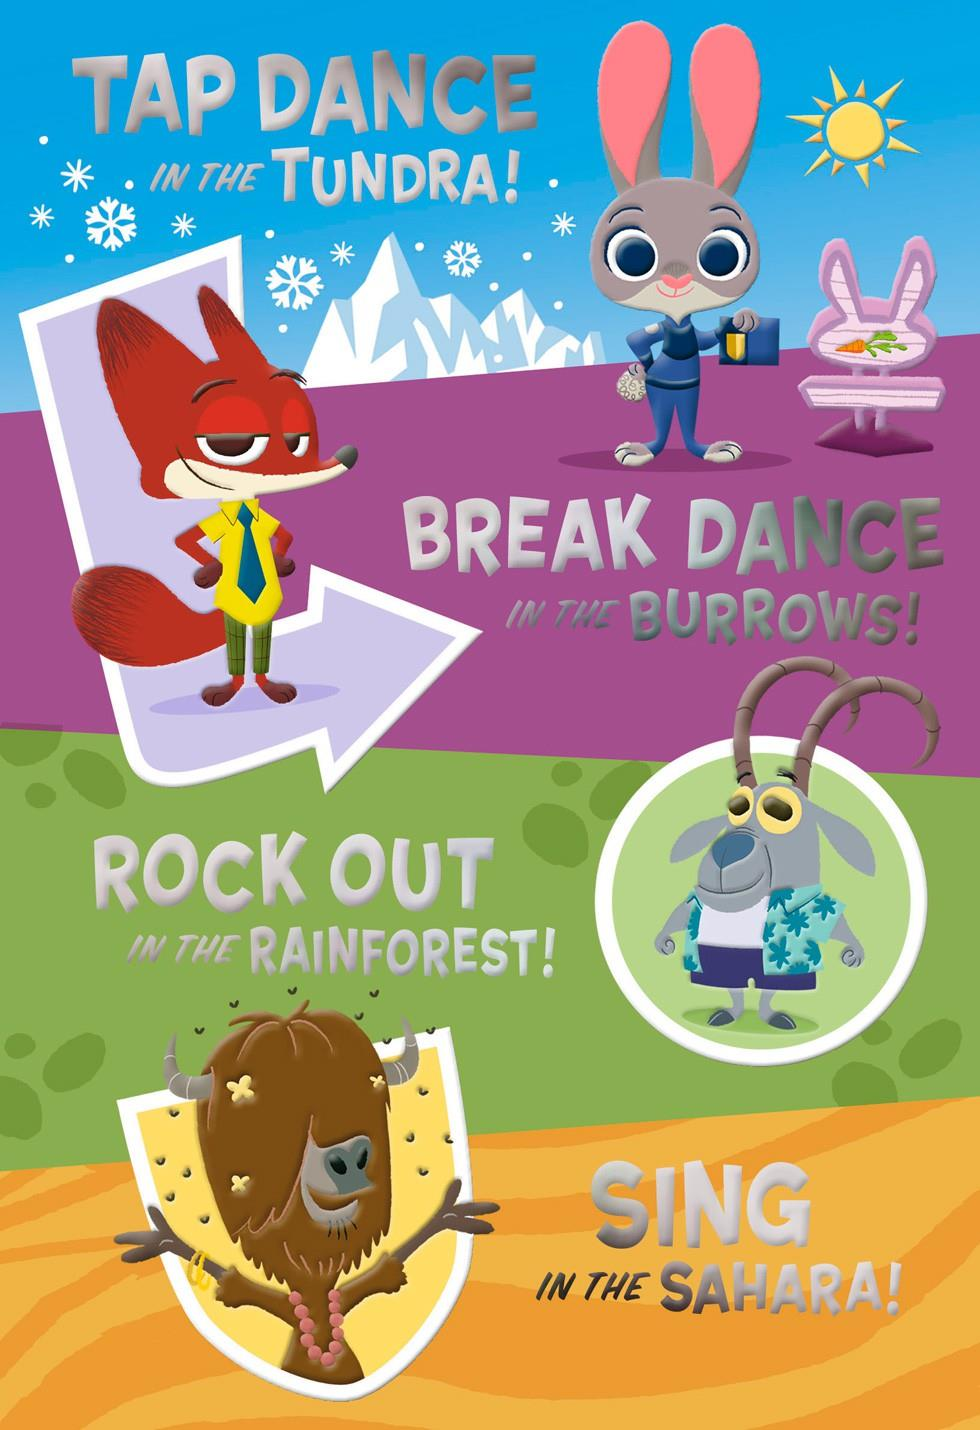 sticker birthday card ; disney-zootopia-birthday-bash-greeting-card-with-stickers-root-499hkb9806_1470_1